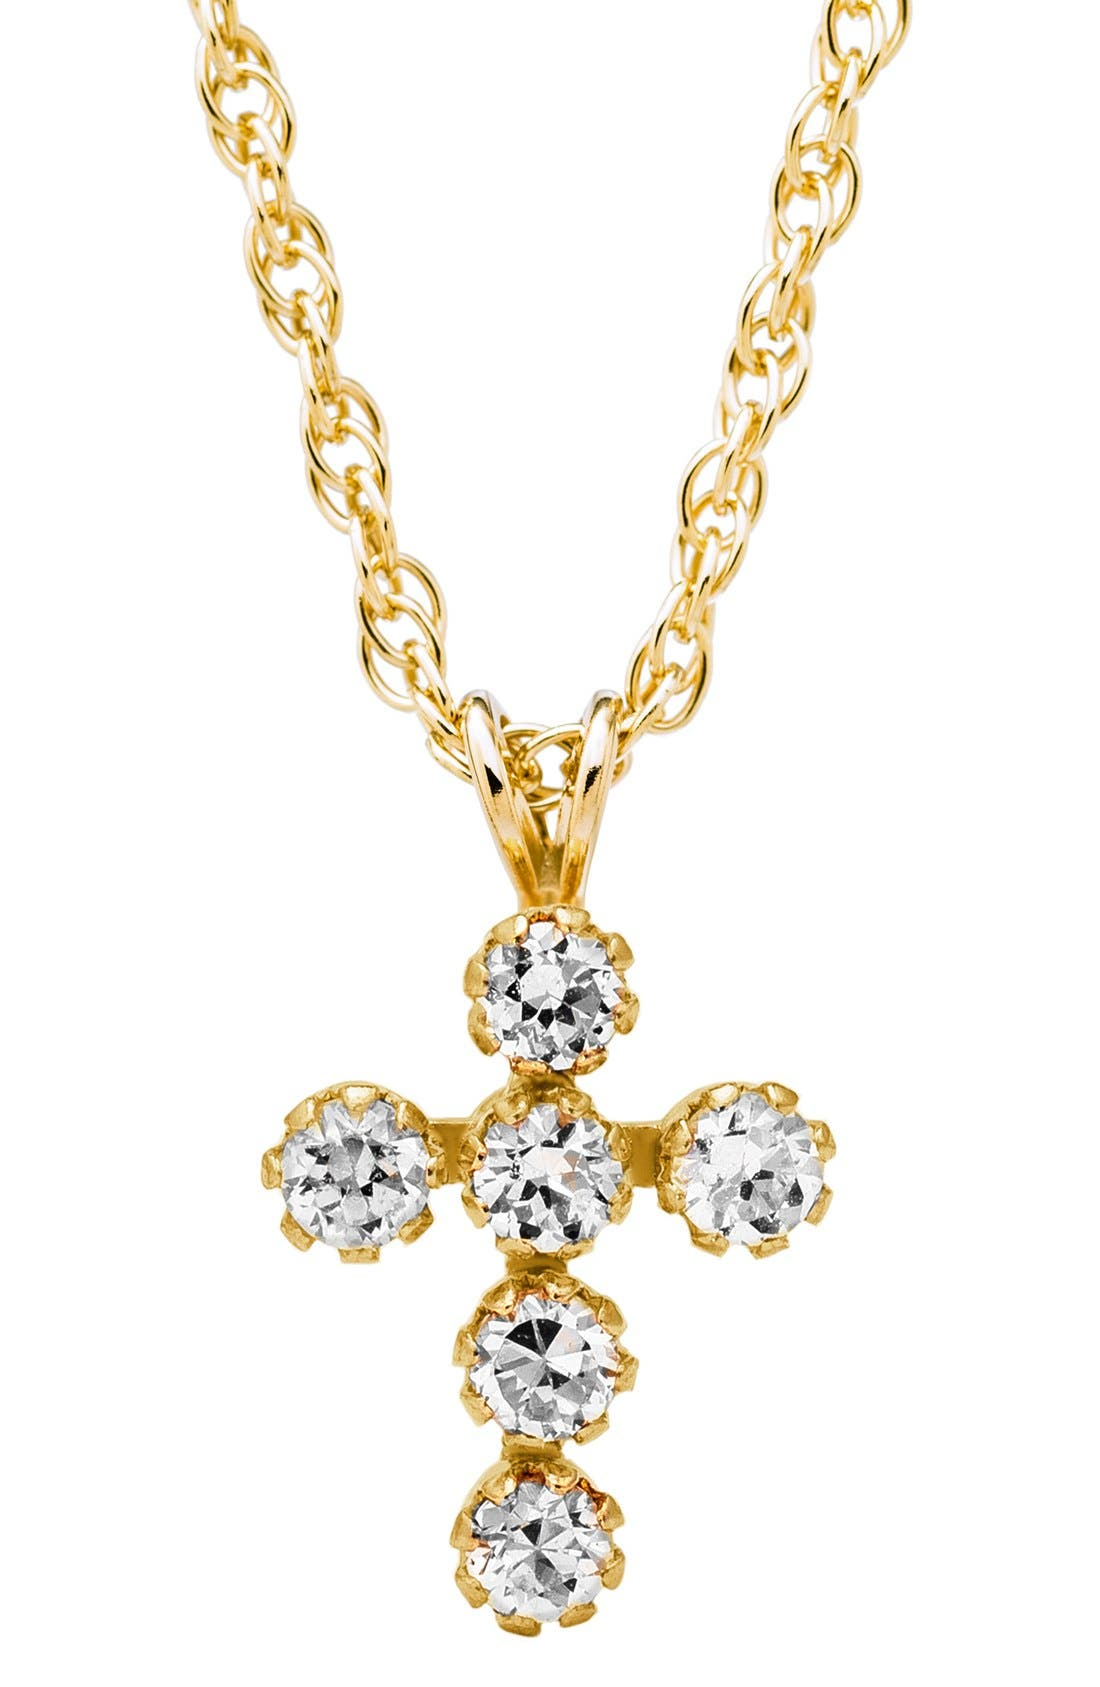 14k Gold & Cubic Zirconia Cross Necklace,                             Alternate thumbnail 2, color,                             Gold